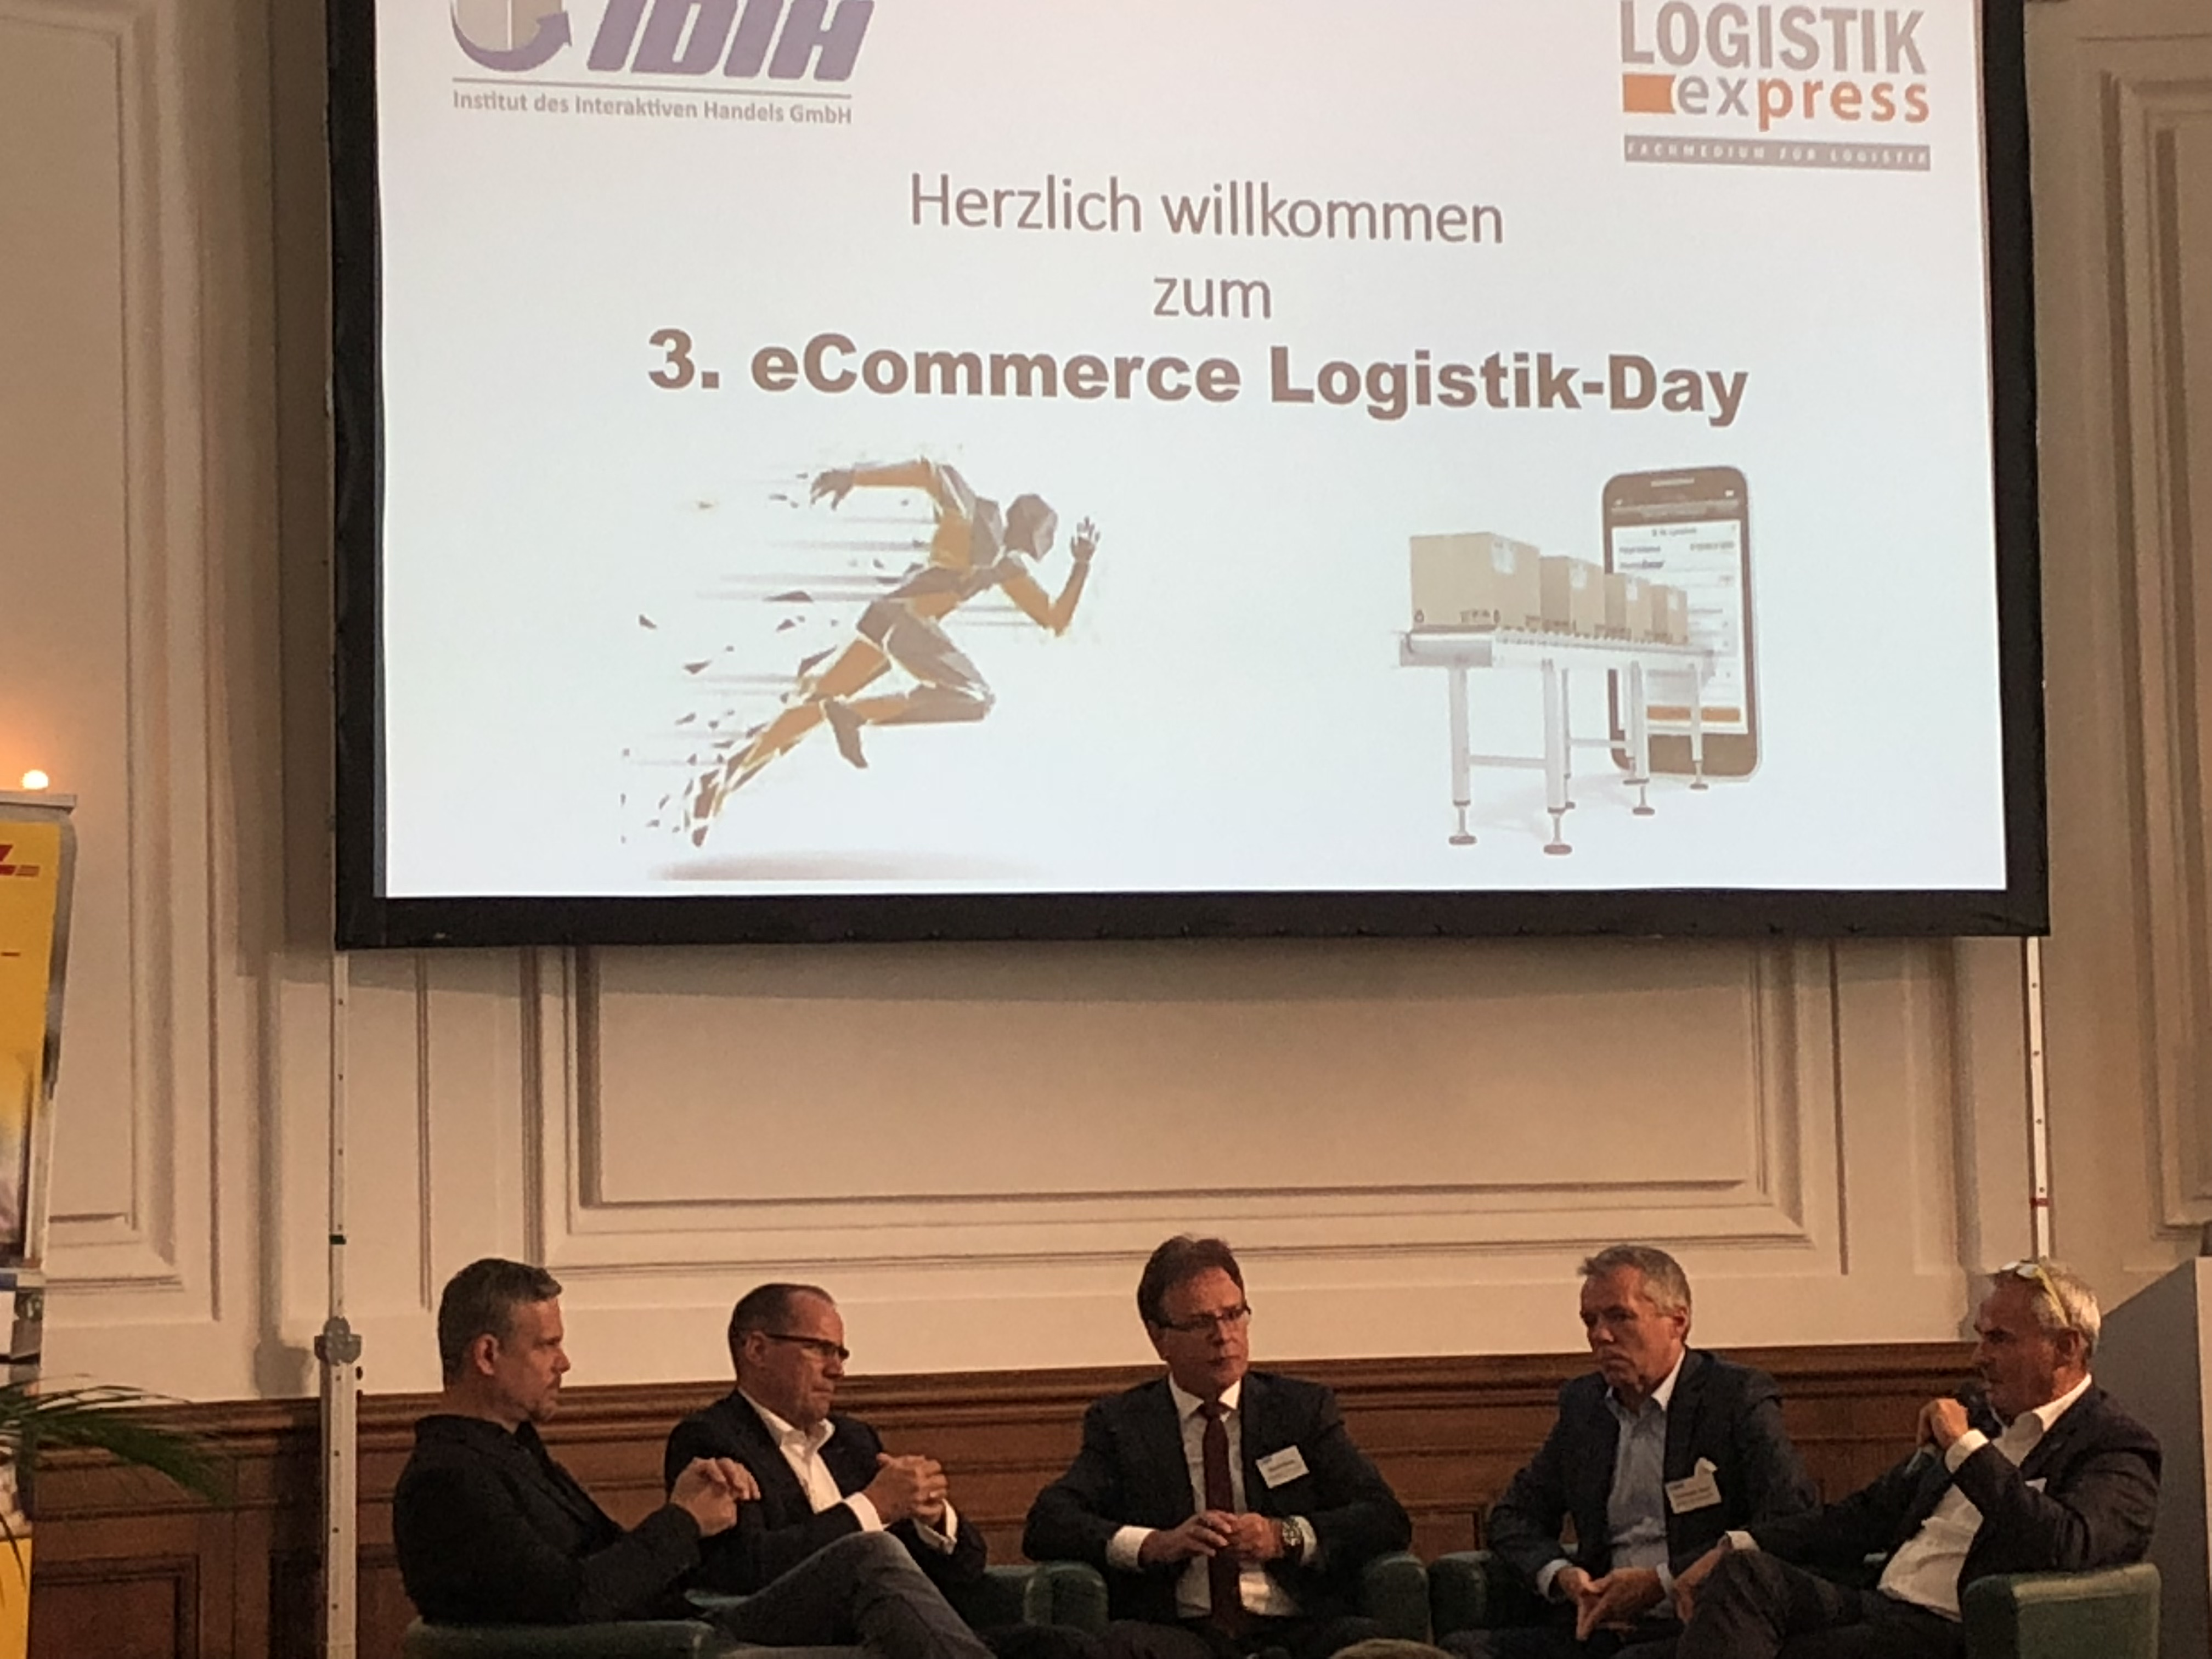 3. eCommerce Logistik-Day: Wege aus dem Dilemma